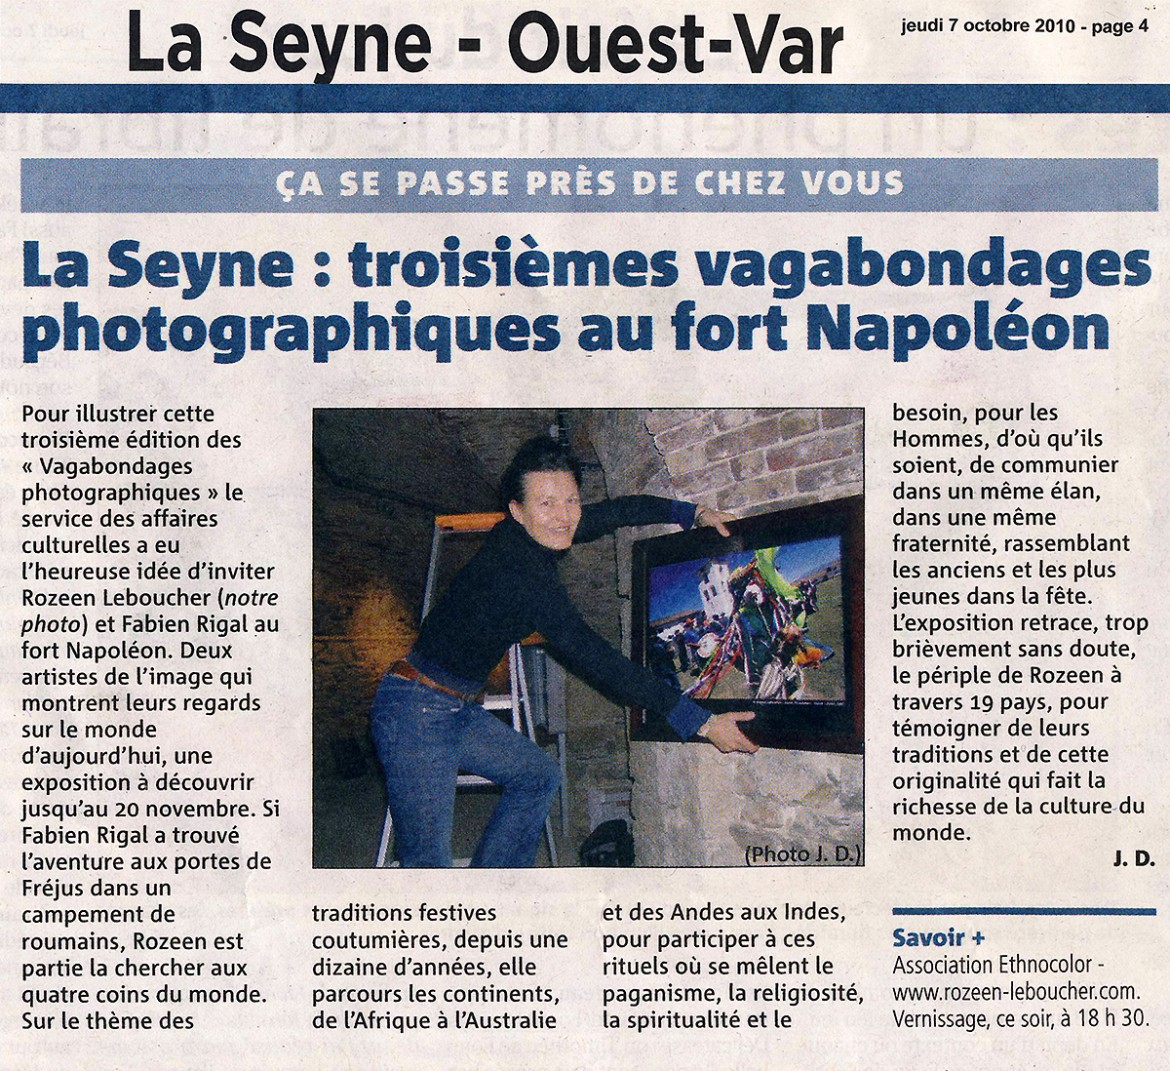 ARTICLE --- Var Matin - Exhibition Ethnocolor - Rozenn Leboucher